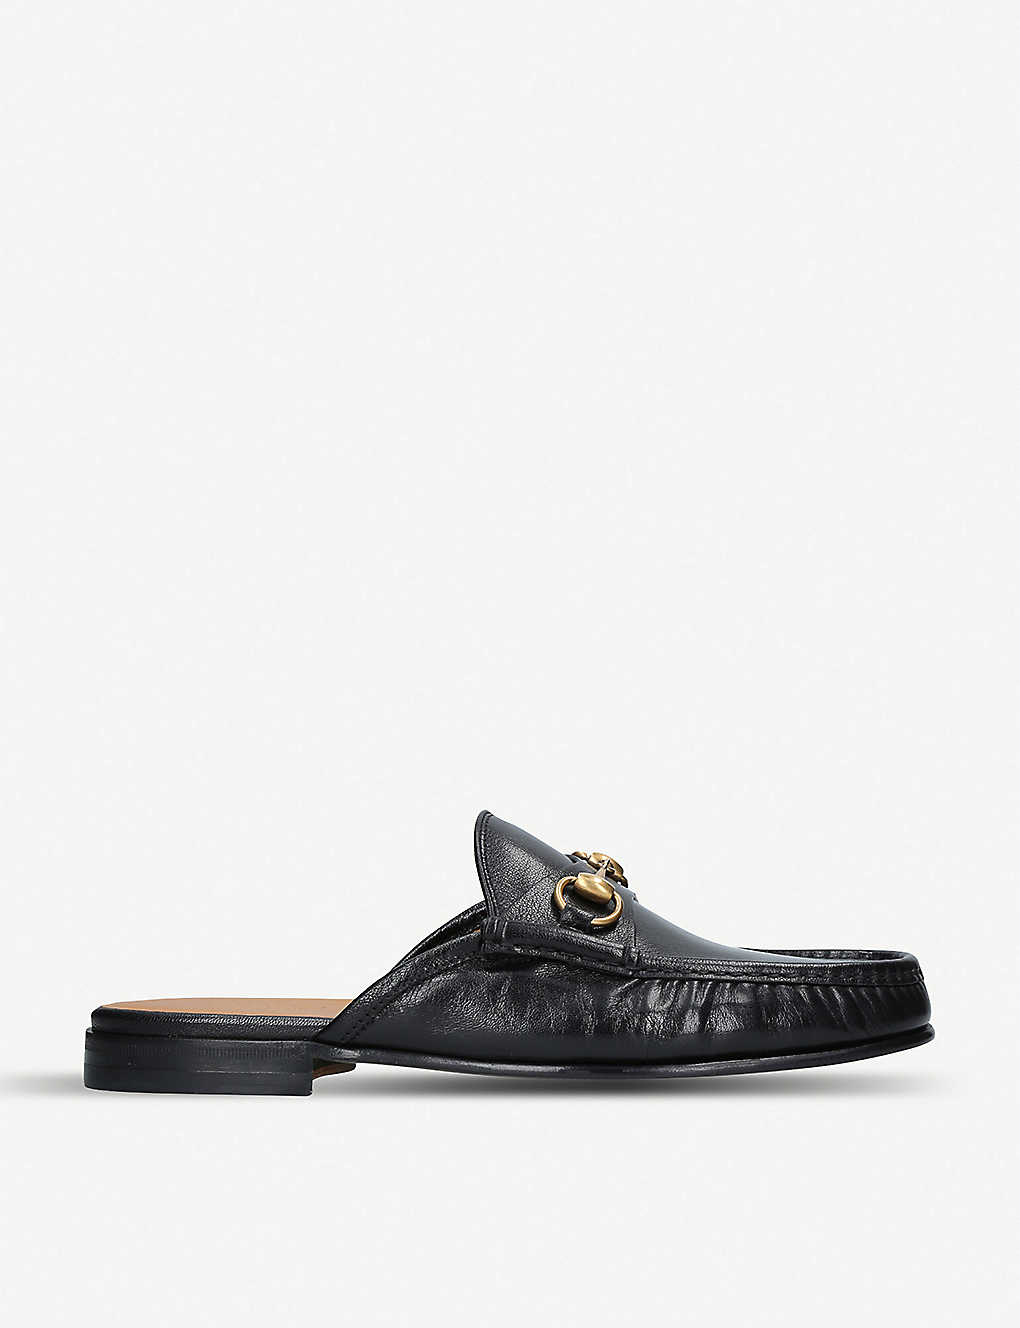 567400cdc9 GUCCI - Roos horsebit open back leather loafers | Selfridges.com